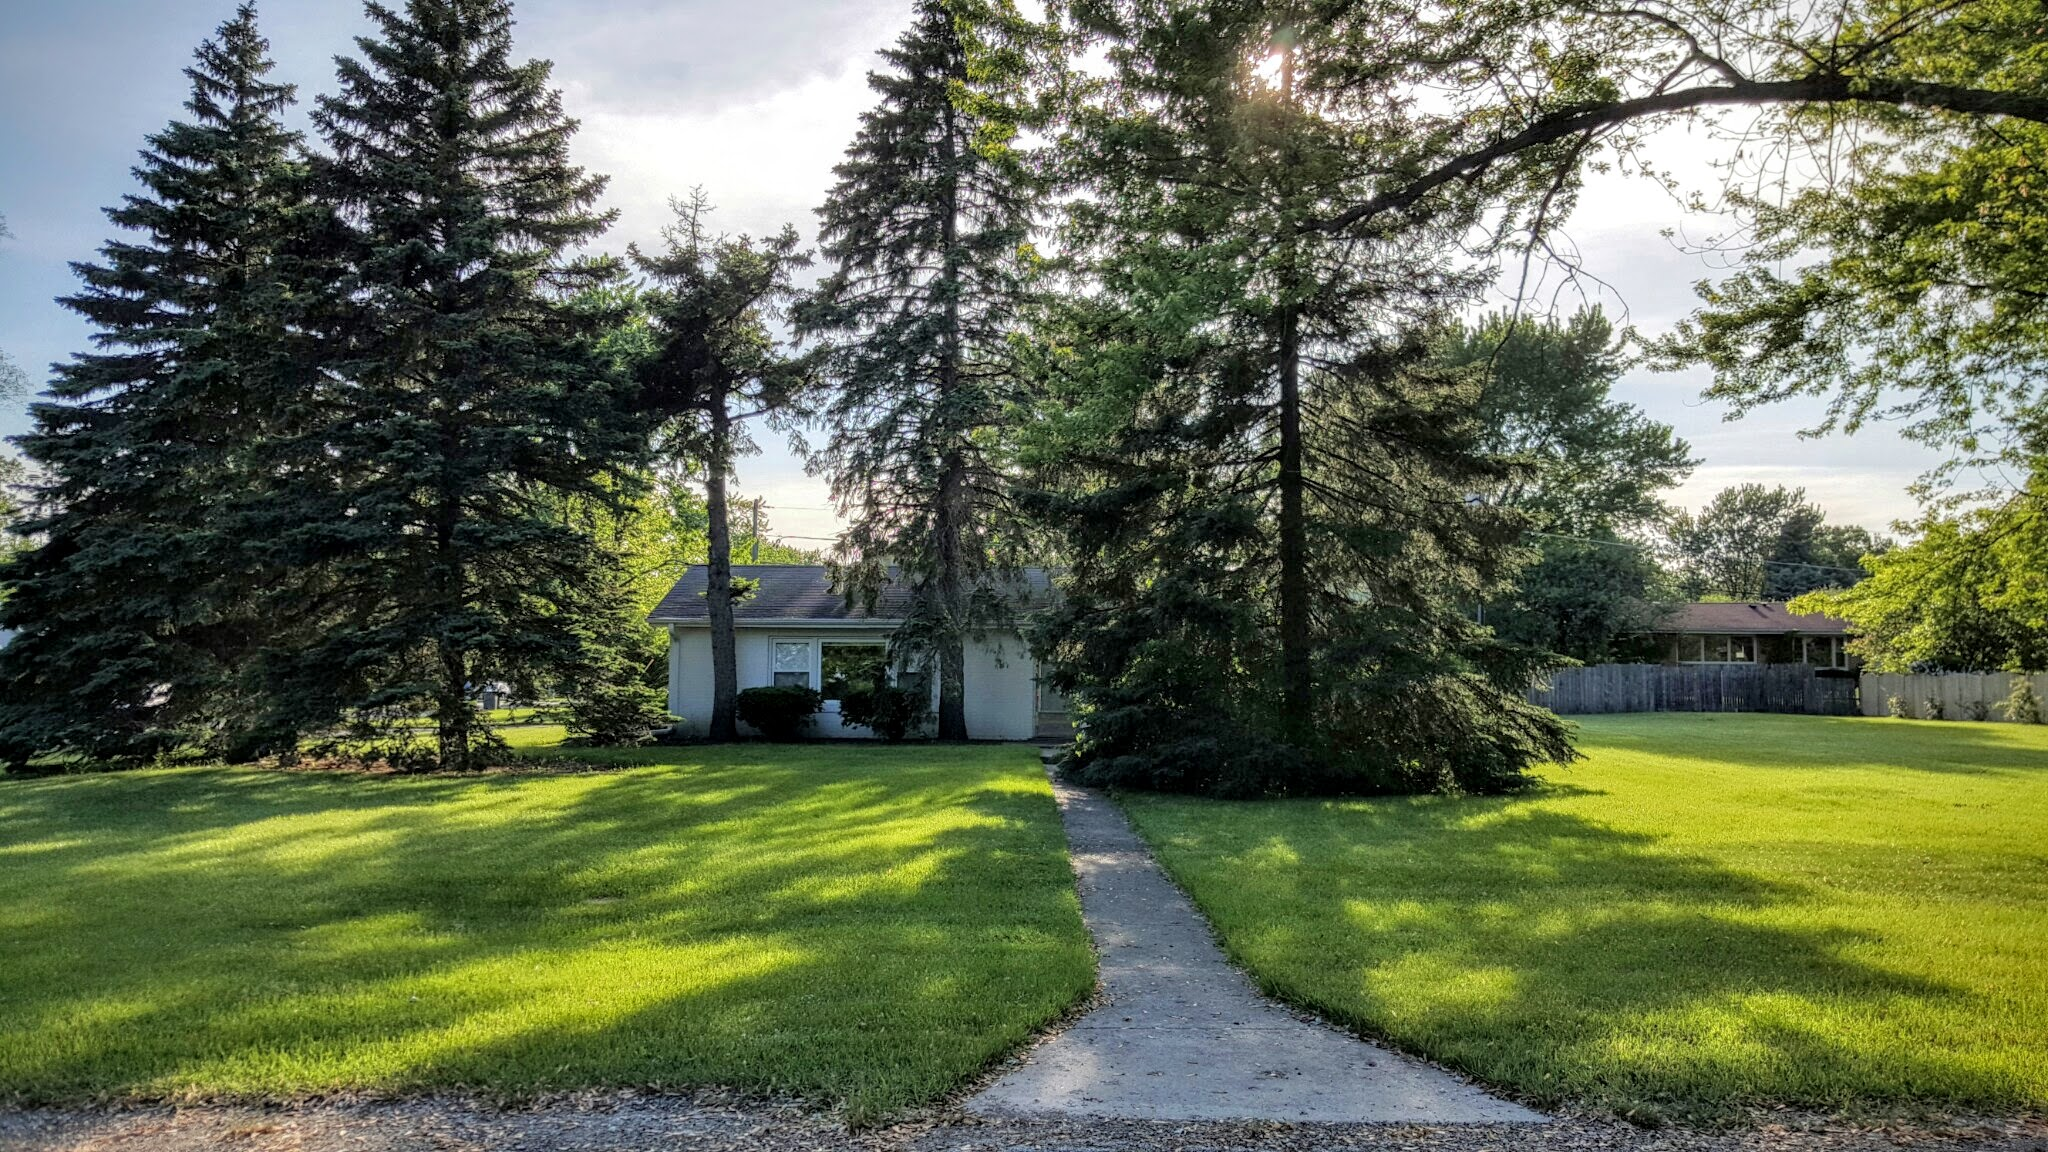 320 Hickory Ct, Northbrook, IL 60062 Exterior East